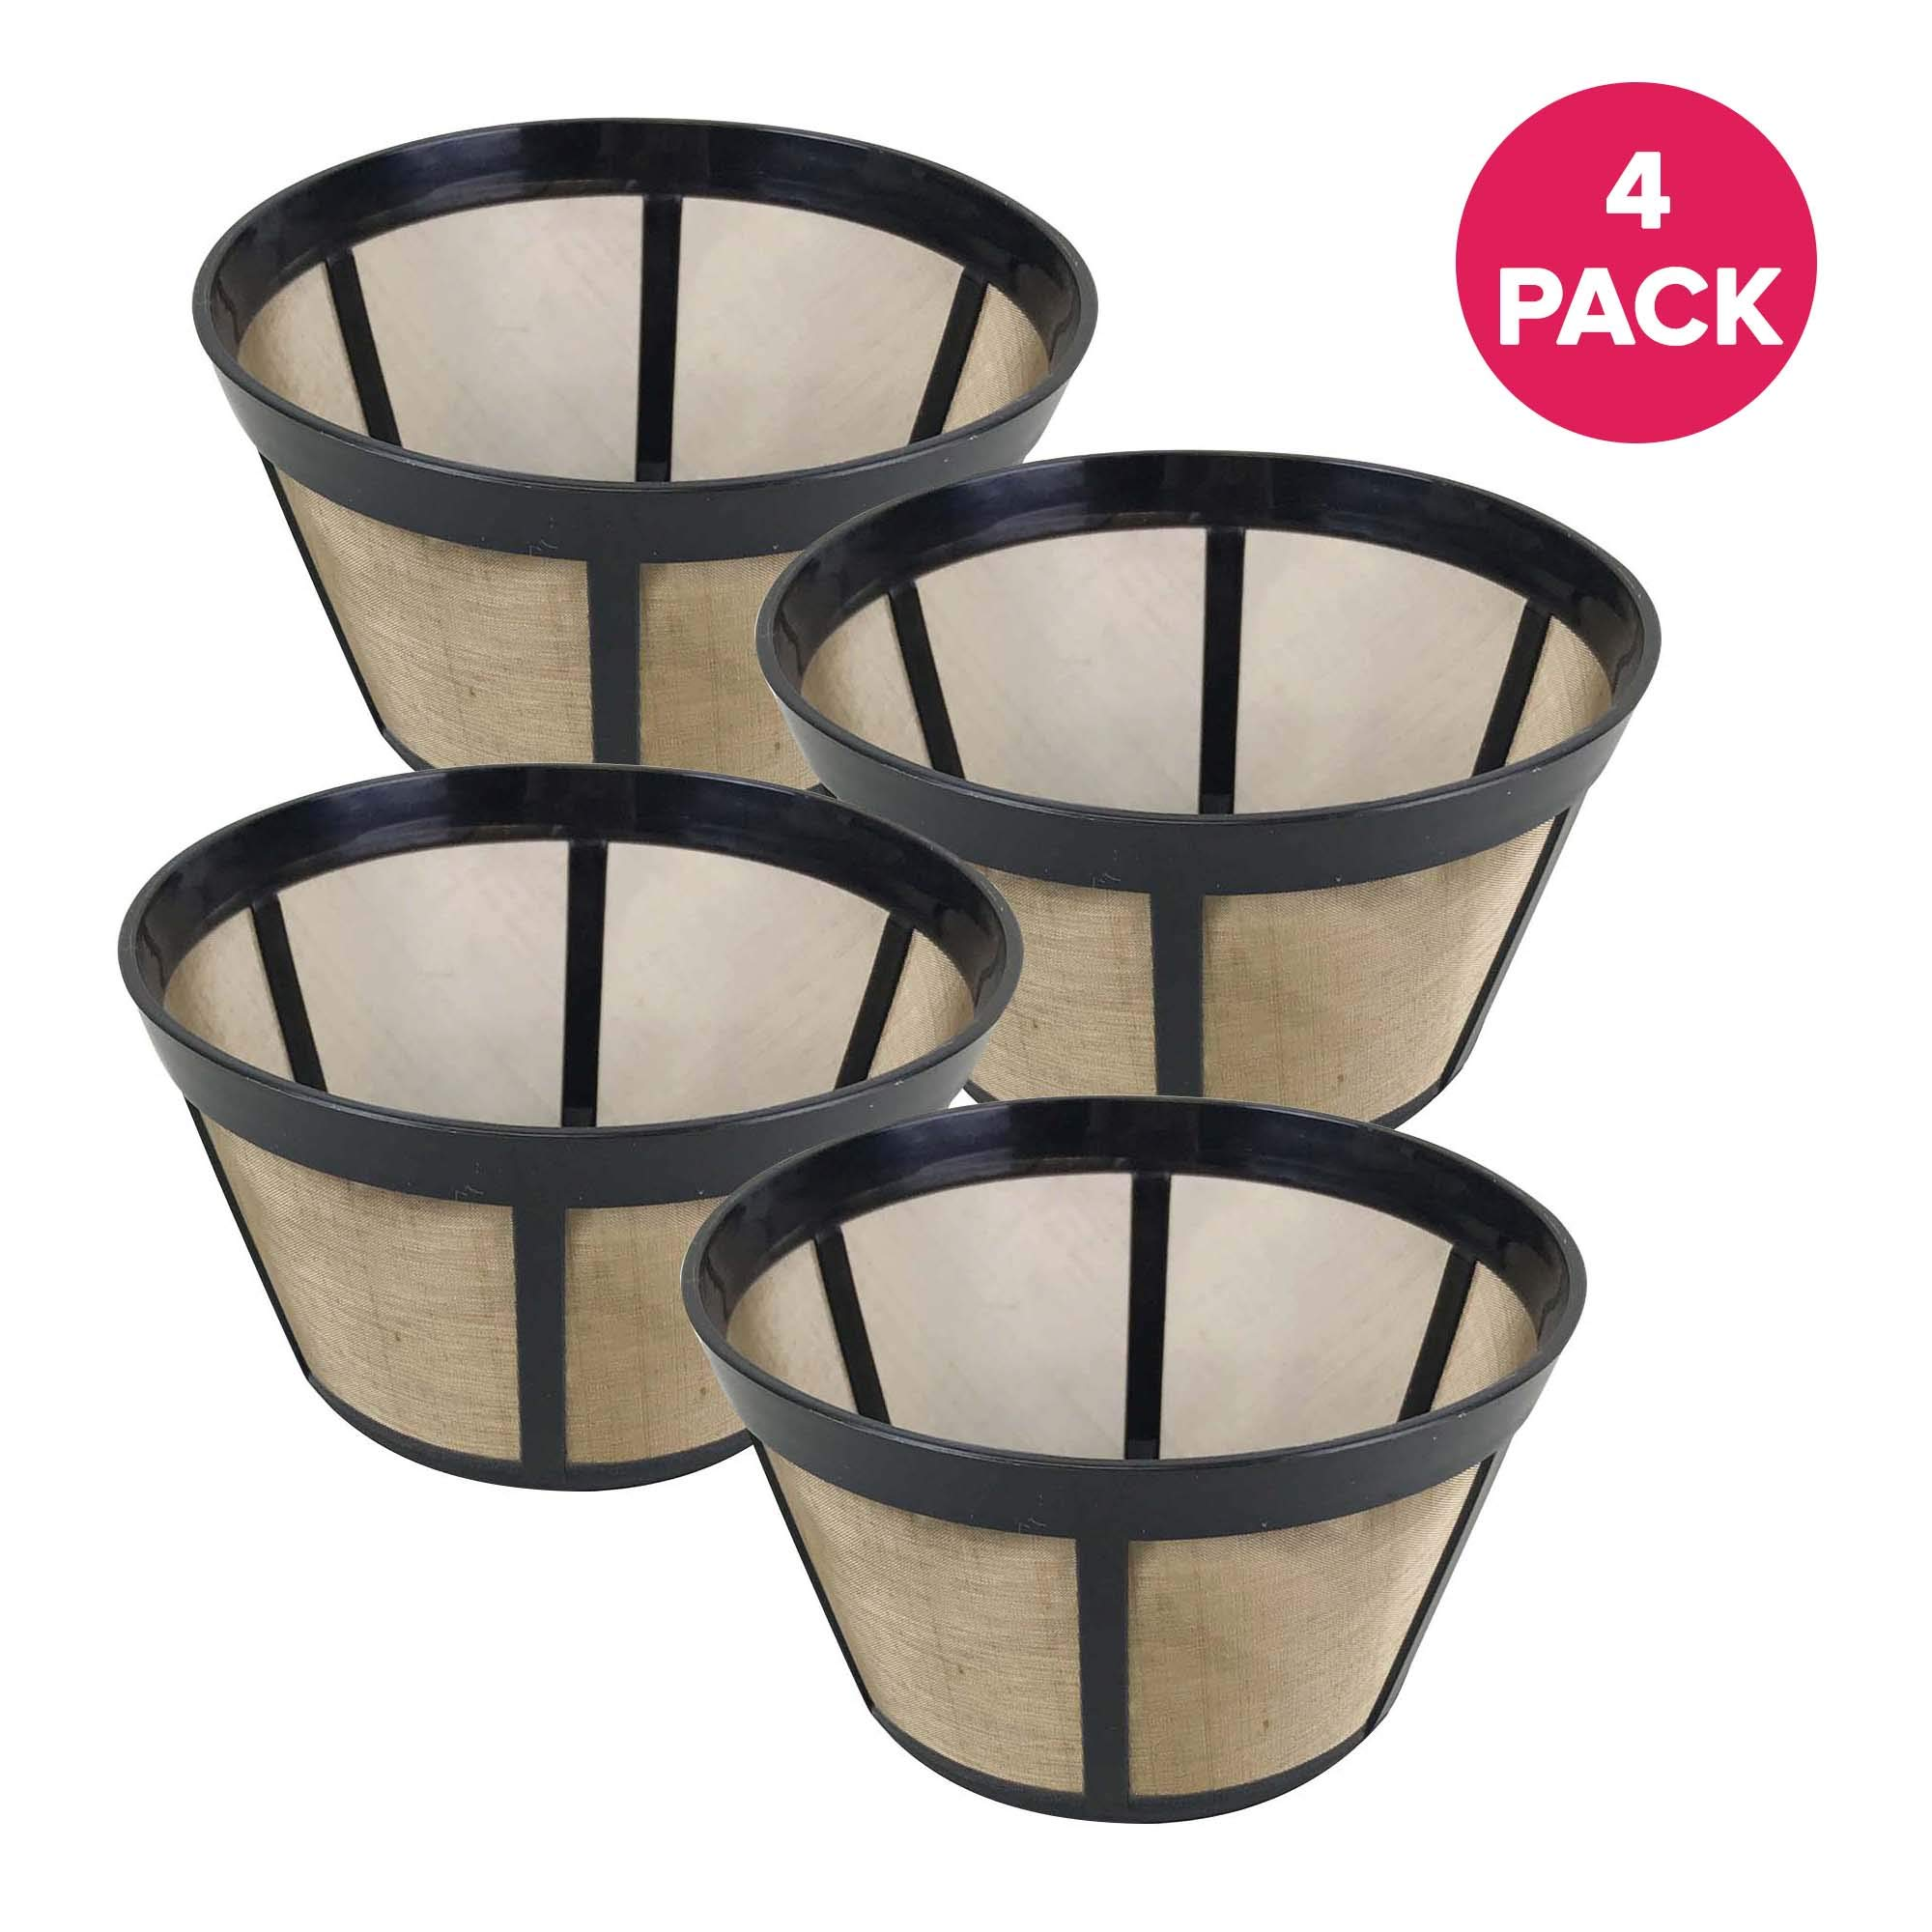 Think Crucial Coffee Filter Basket Replacement - Compatible with Bunn Clever Large Coffee Dripper (18 Ounces) C60666 Parts, Models For Unbleached Natural Brown #2 Paper Coffee Filters - (4 Pack)